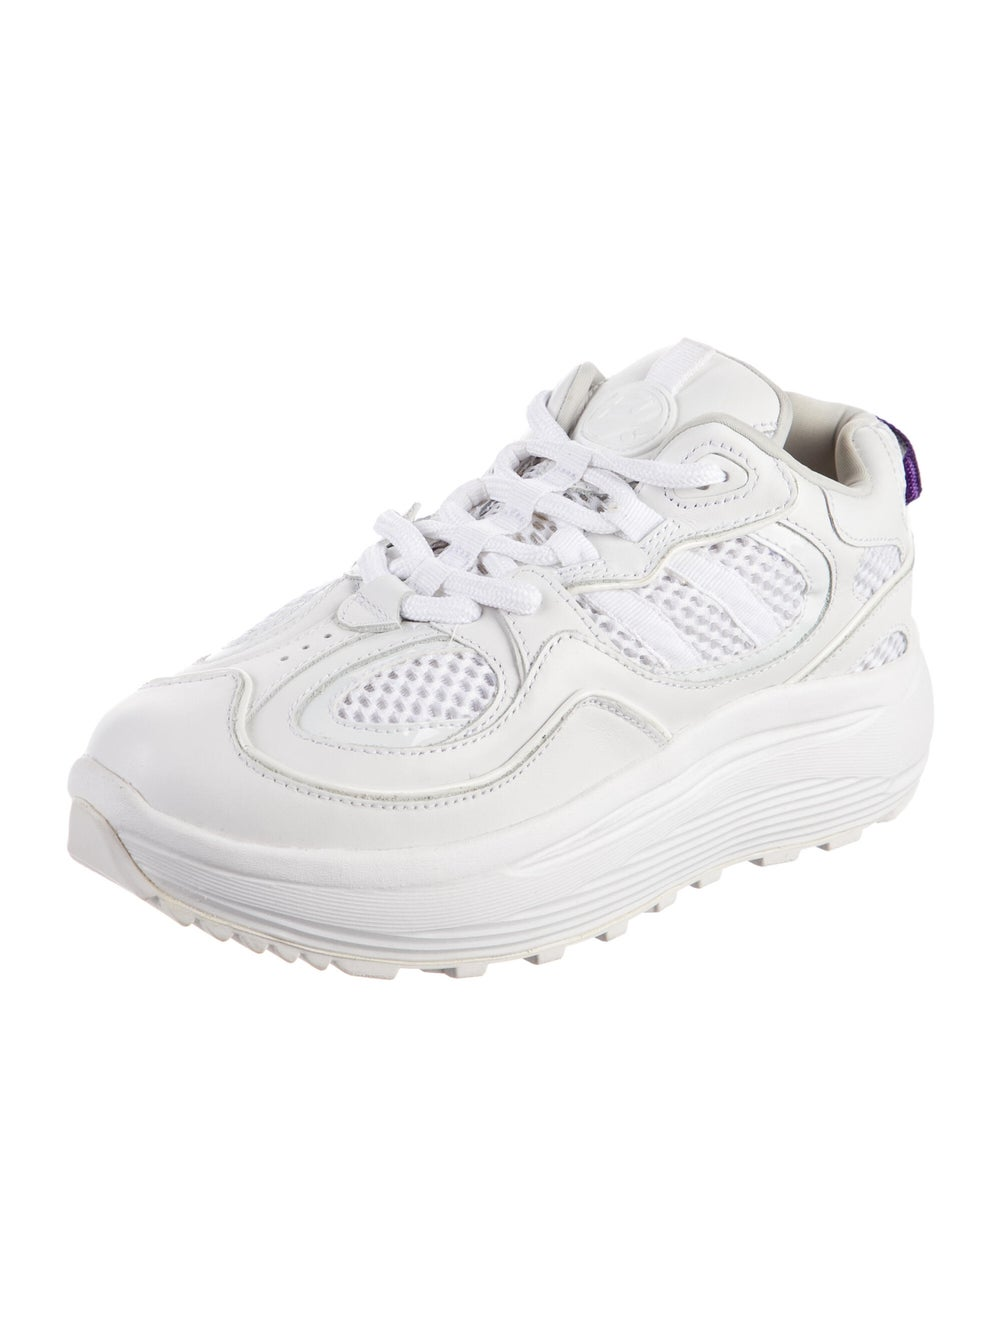 Eytys Leather Sneakers White - image 2